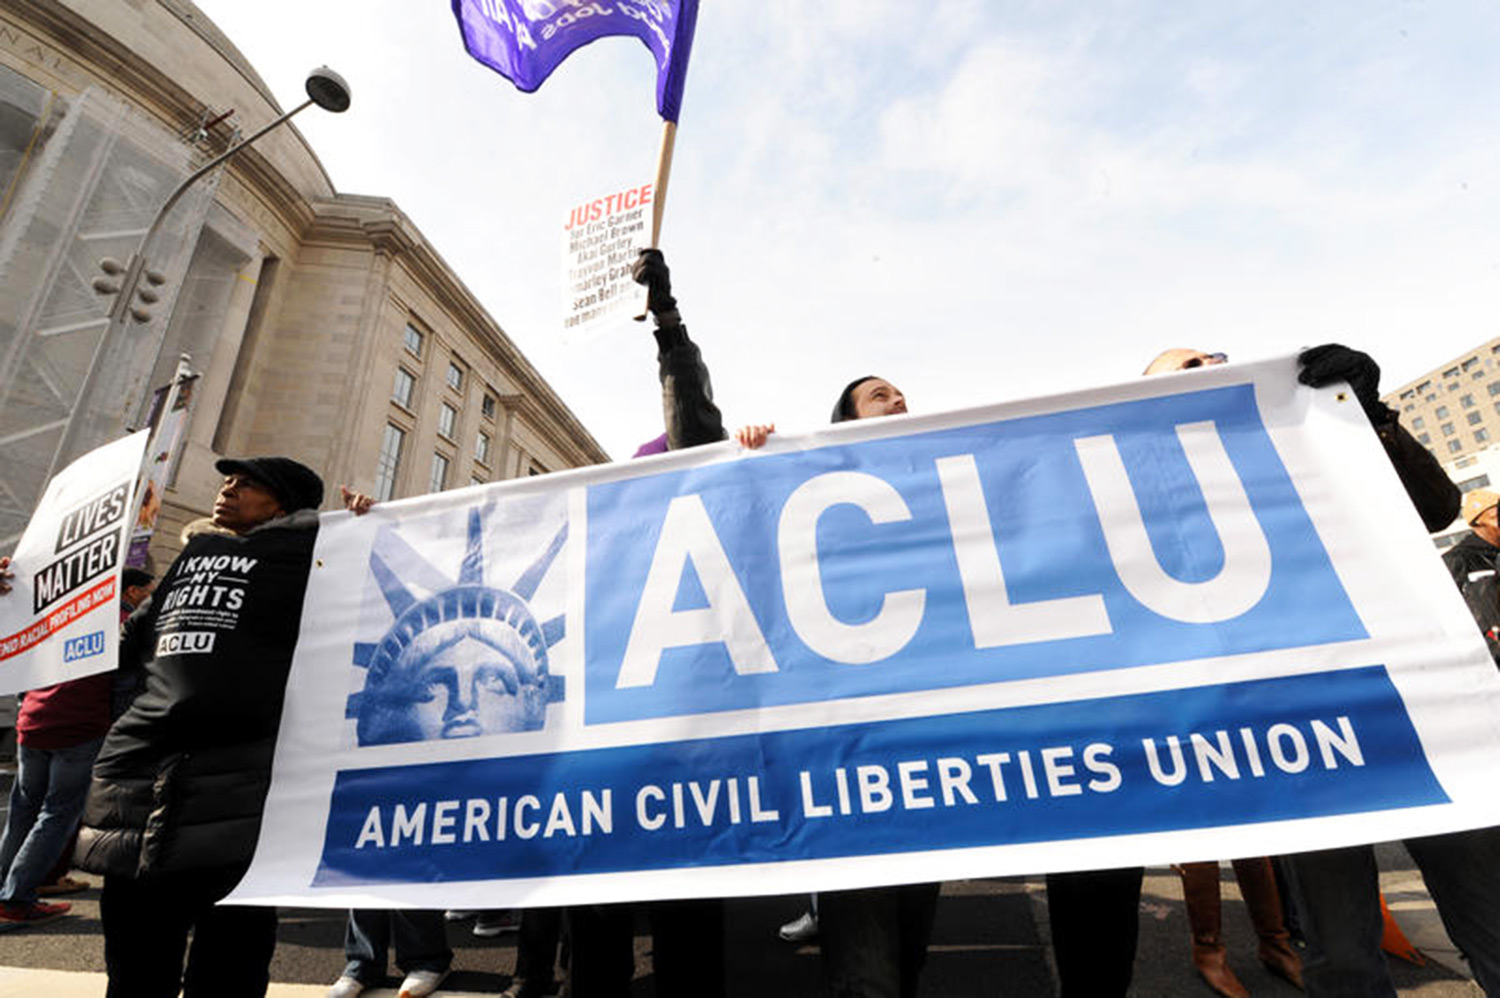 ACLU: Know Your Rights: What To Do If You're Stopped By Police, Immigration Agents or the FBI